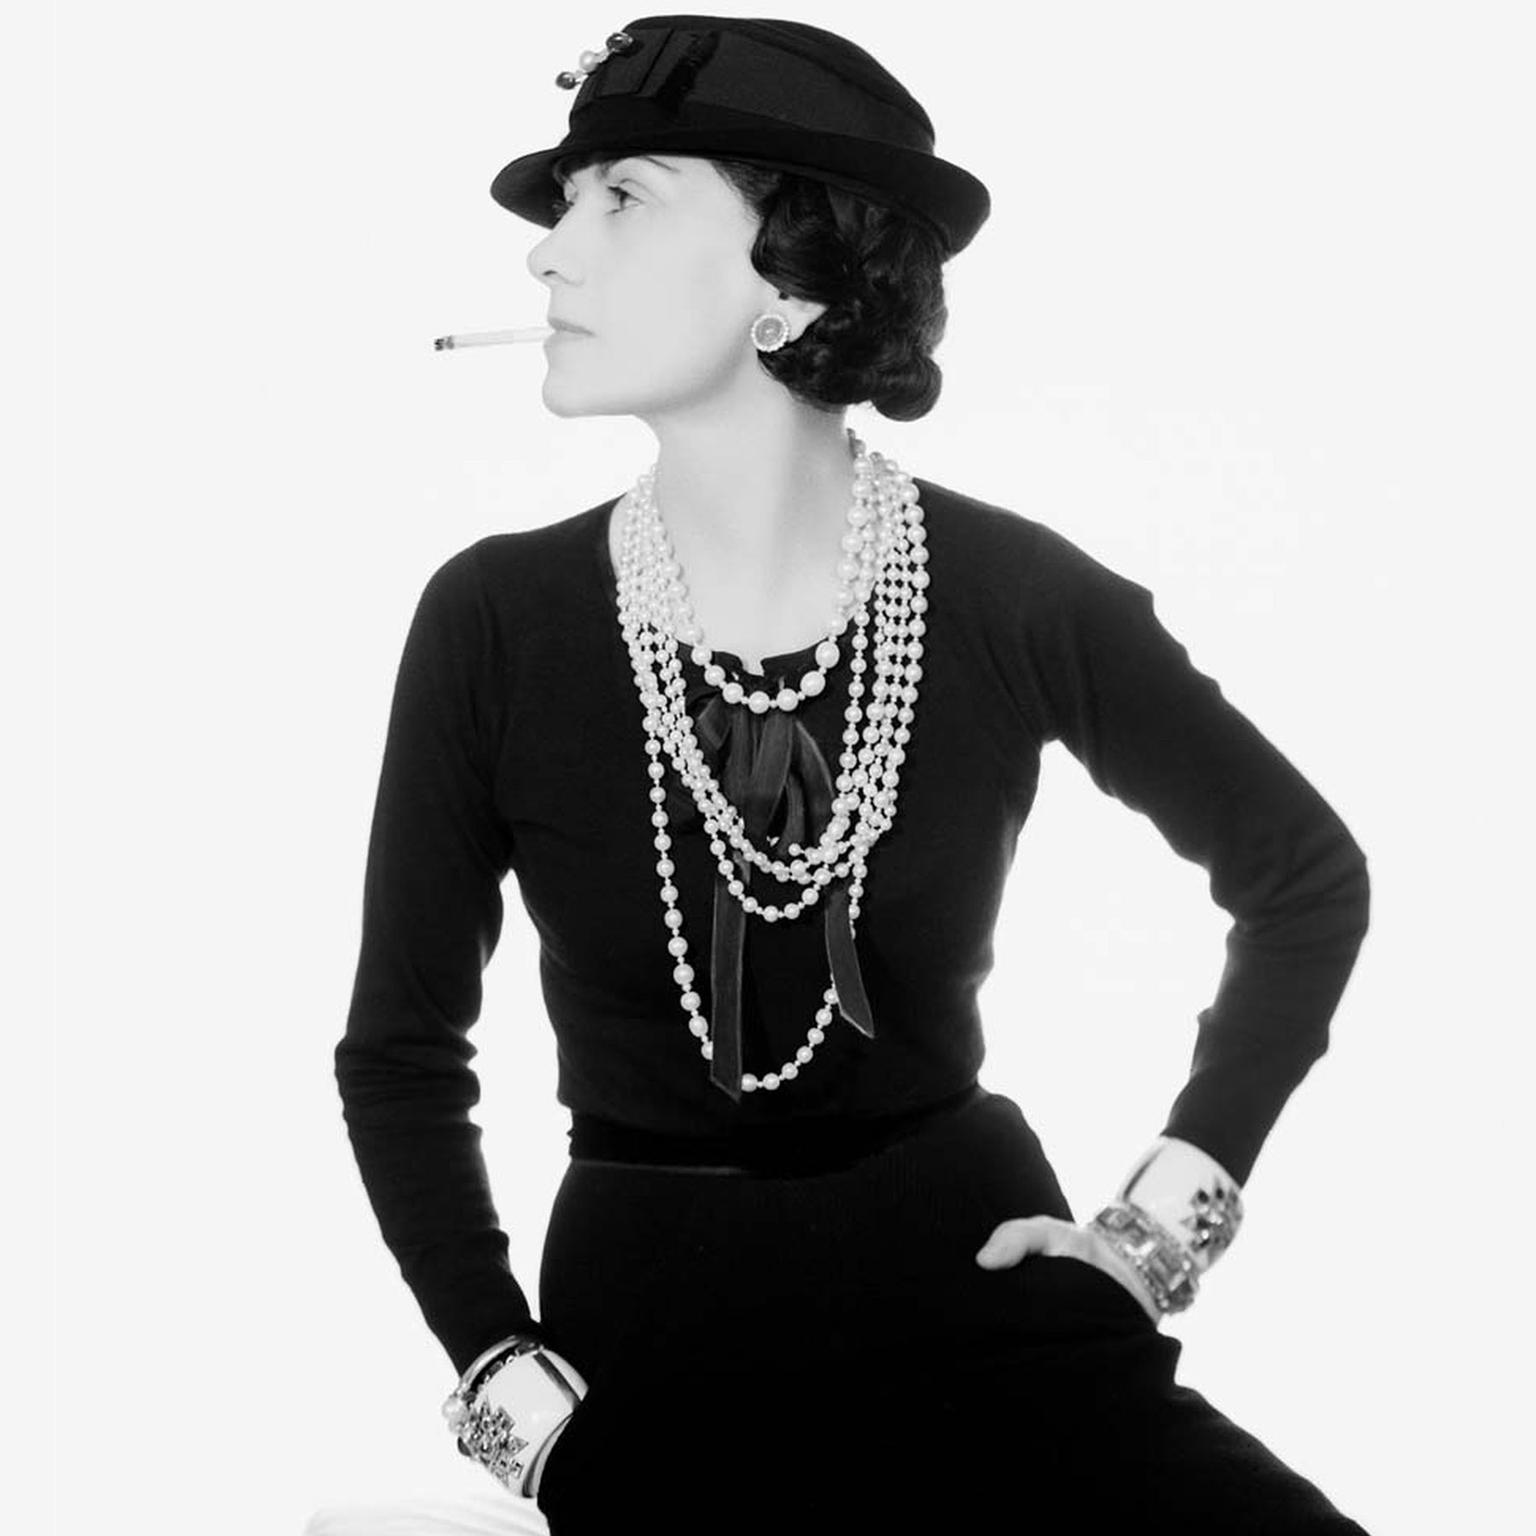 The legendary Coco Chanel, both a friend and muse to Fulco di Verdura, pictured in one of her most iconic photographs wearing her Maltese cuffs.